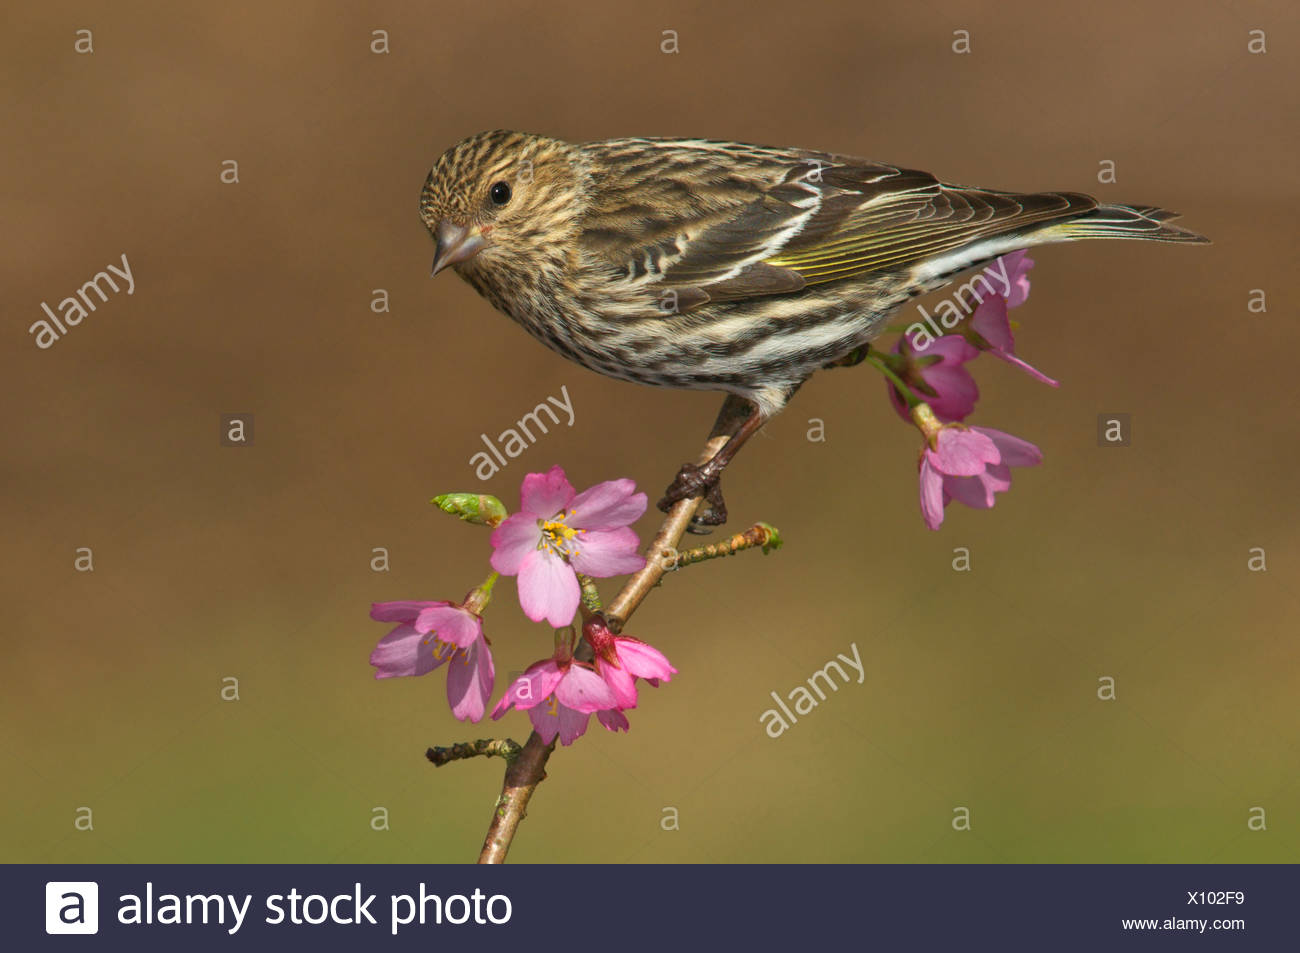 Pine siskin (Carduelis pinus) perched on flowering plum branch in Victoria, Vancouver Island, British Columbia, Canada - Stock Image